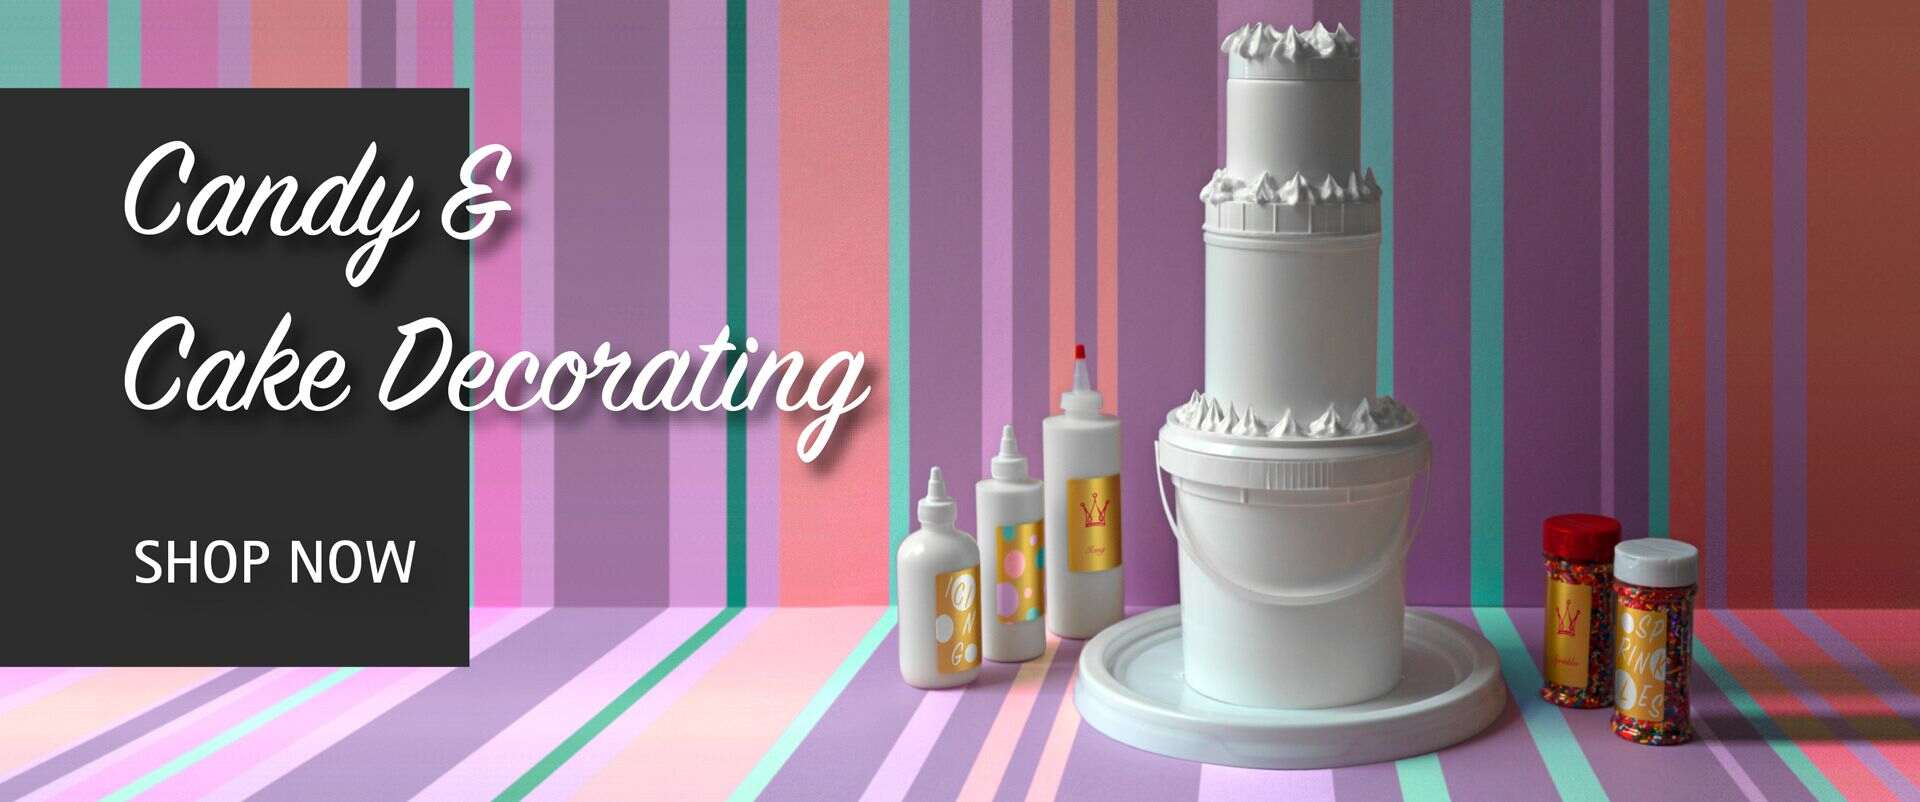 CANDY MAKING AND CAKE DECORATION BANNER